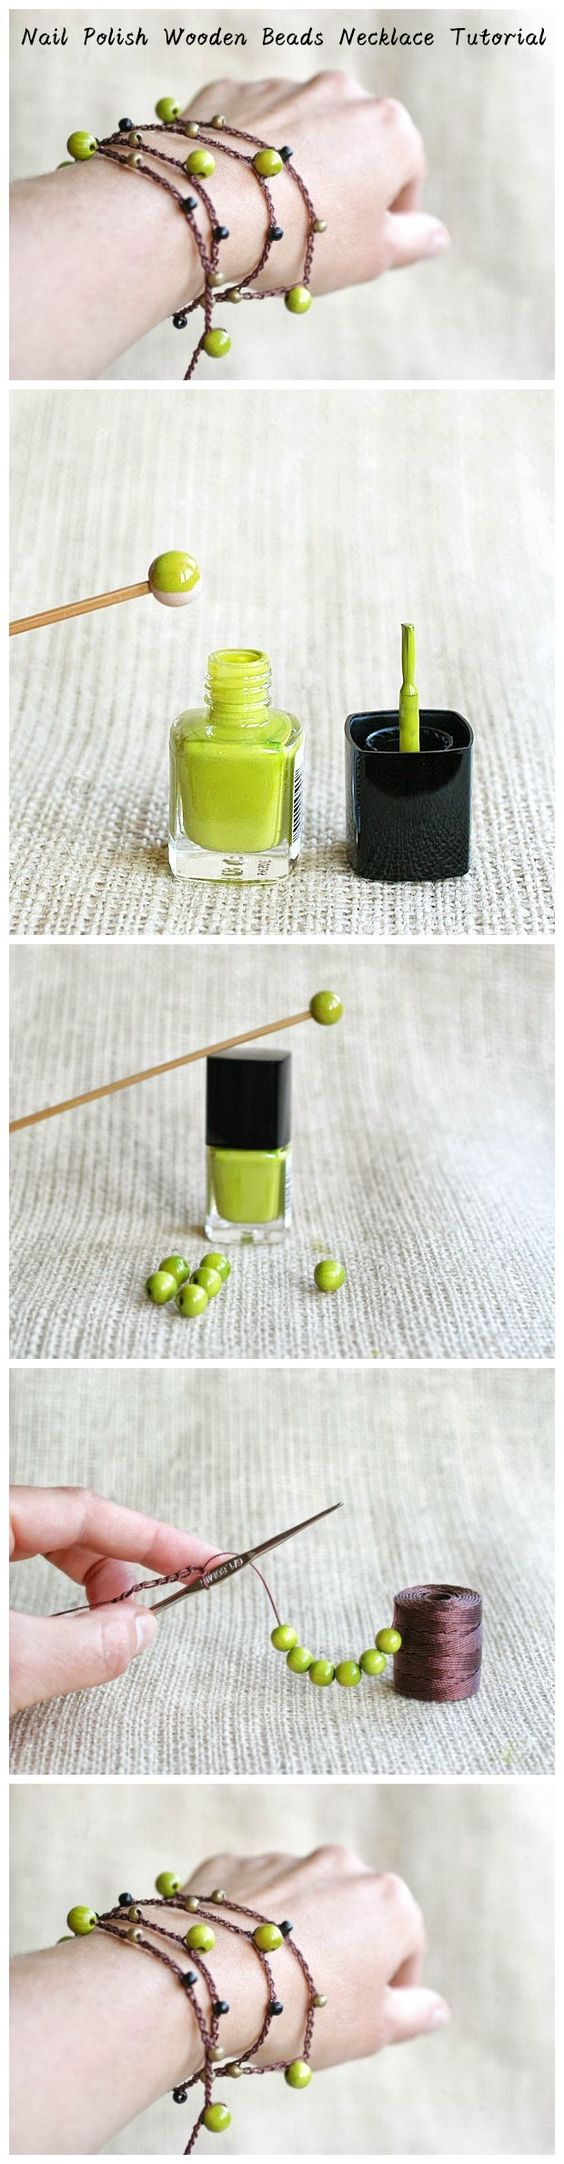 Nail Polish Wooden Beads #Necklace #Tutorial